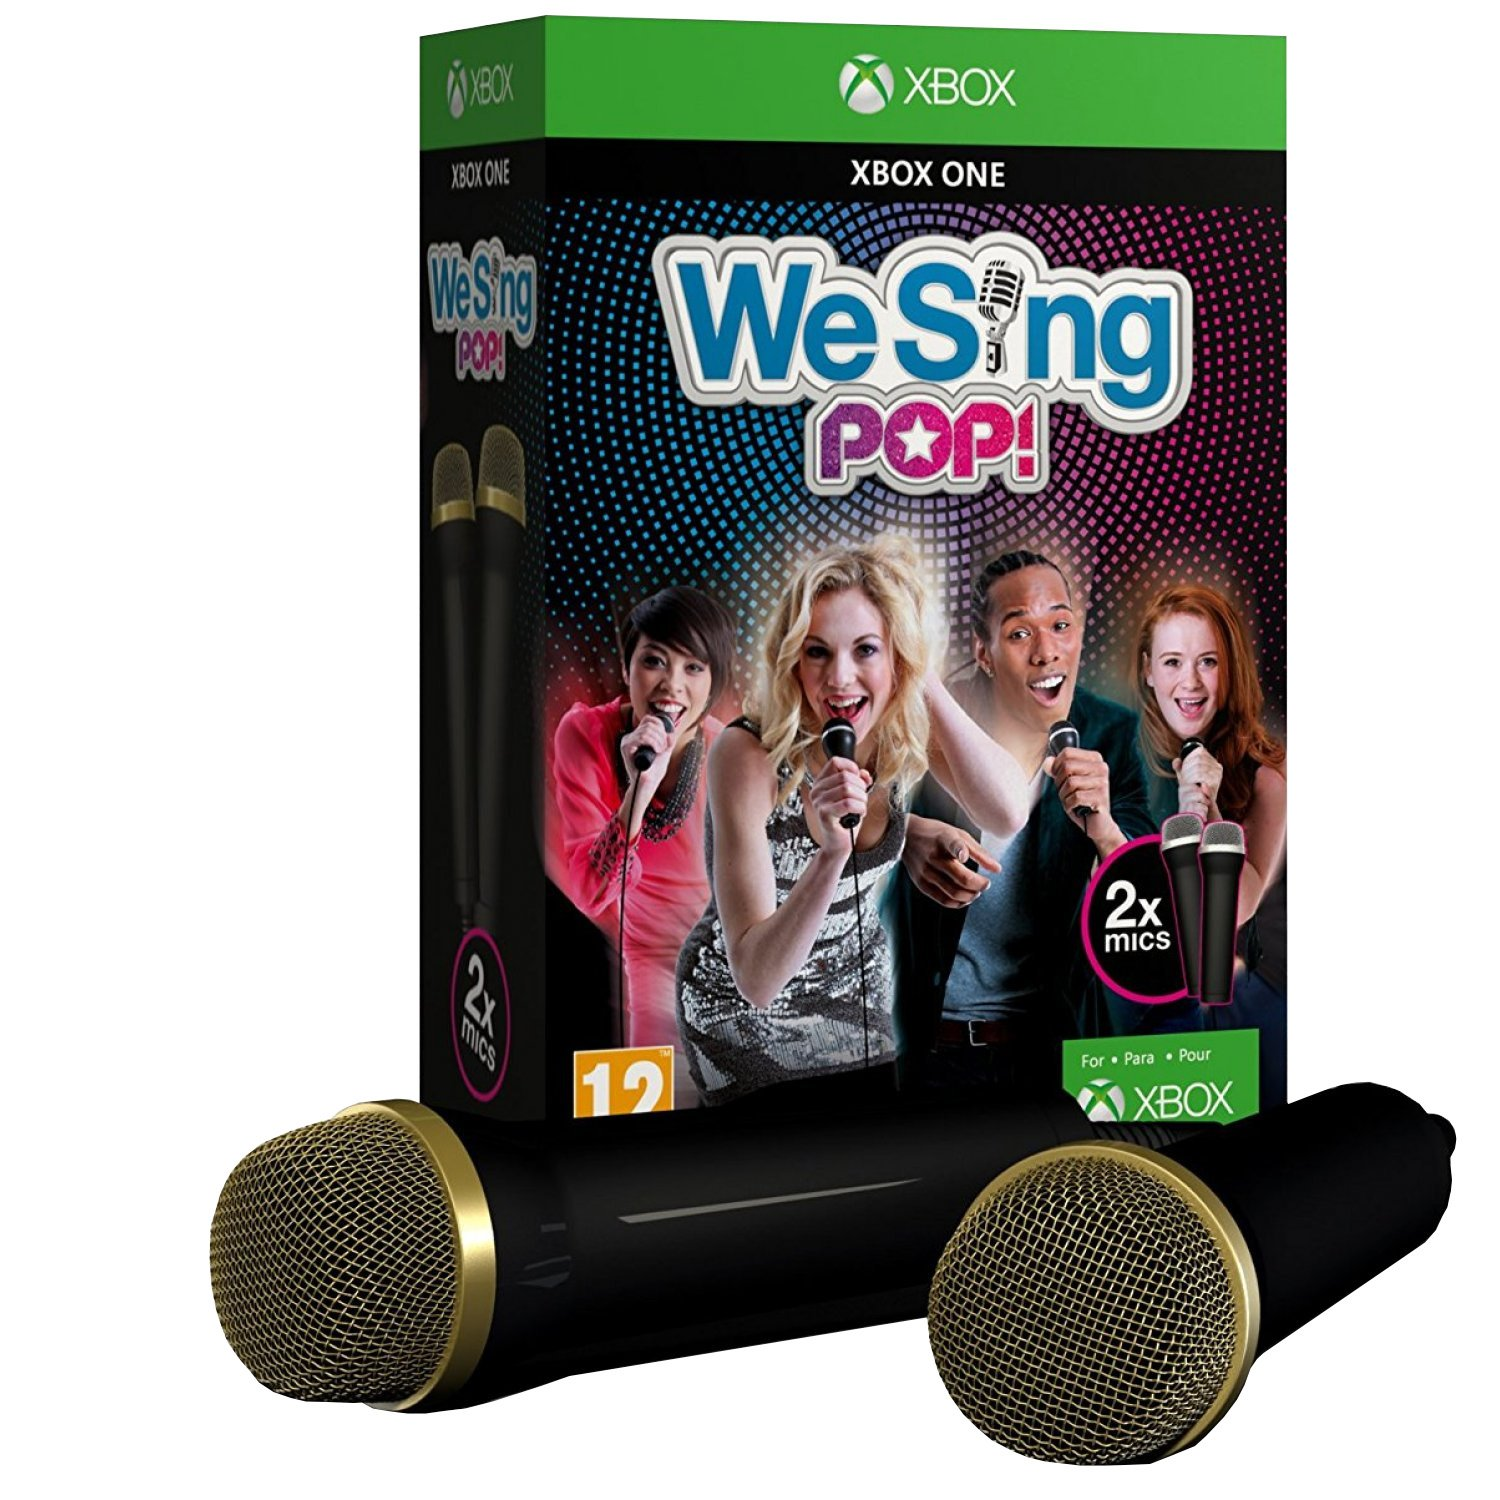 Just Dance 2018 Xbox One Games Pop Ice Paket Bundle We Sing Inkl 2 Mikrophone Mic Edition